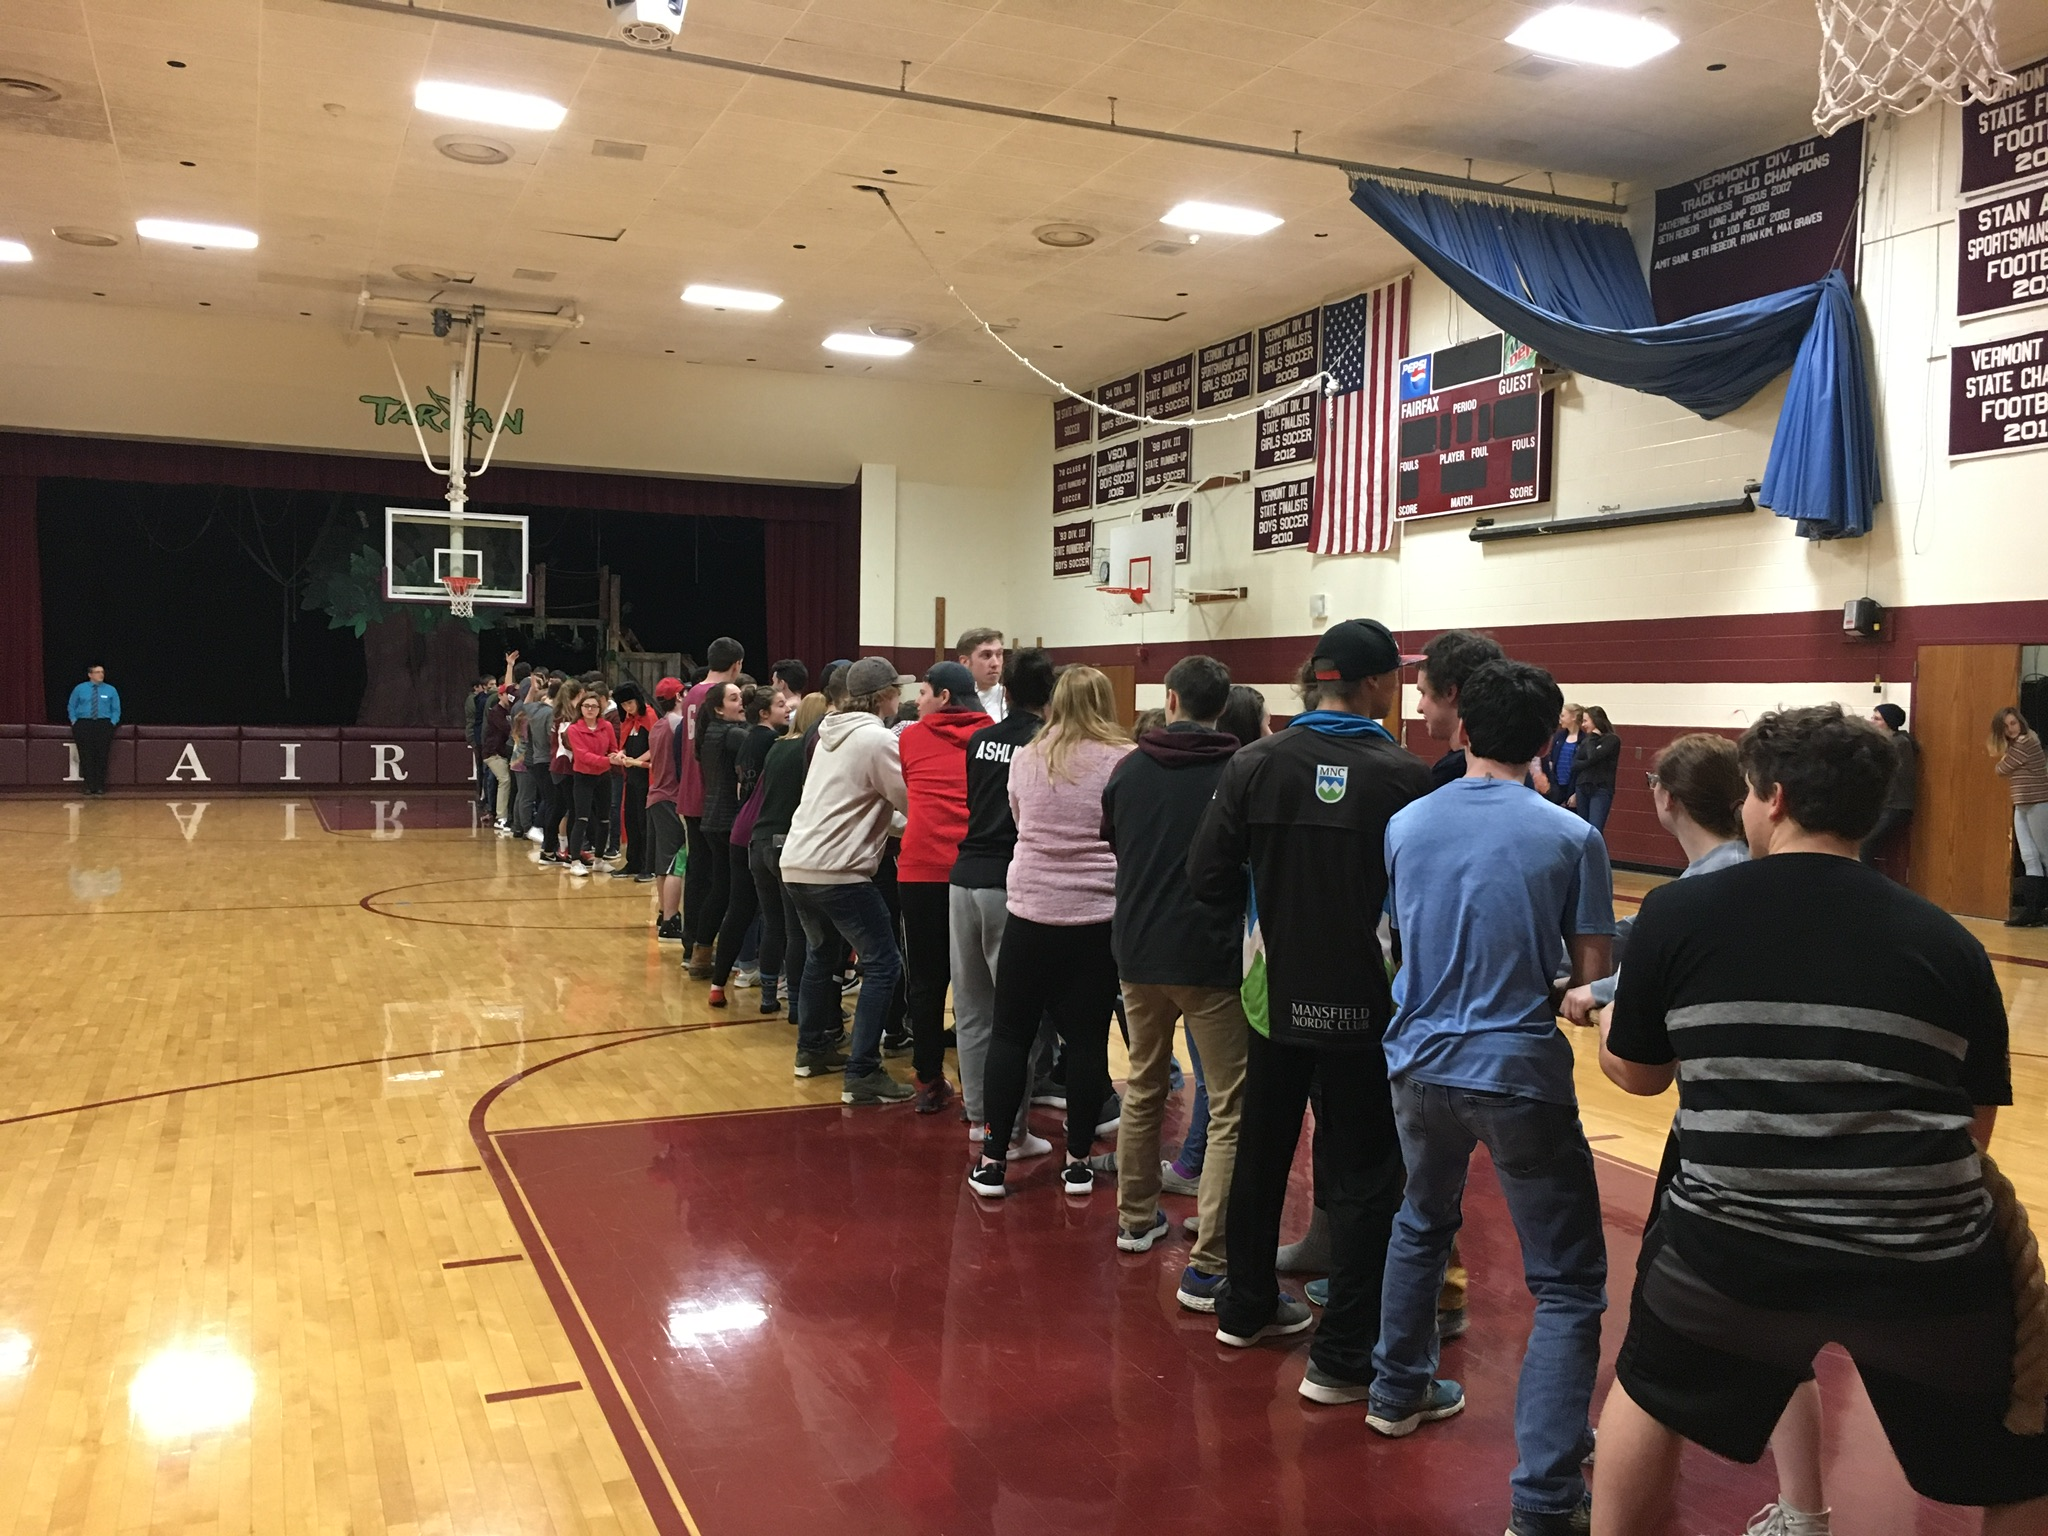 Class of 2021 vs Class of 2018 in Tug of War Finals